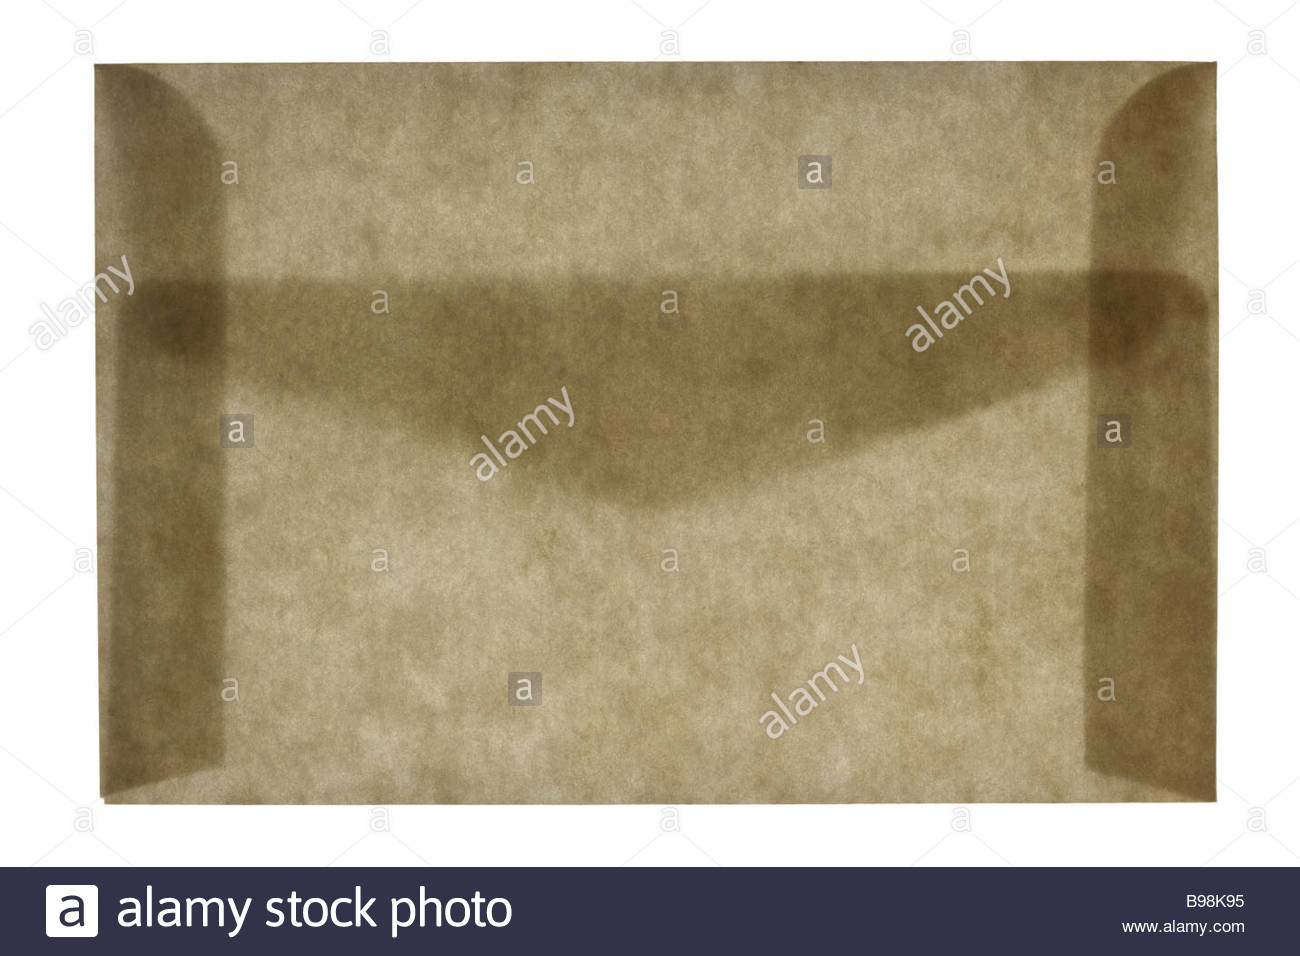 front view of a closed letter envelope - Stock Image